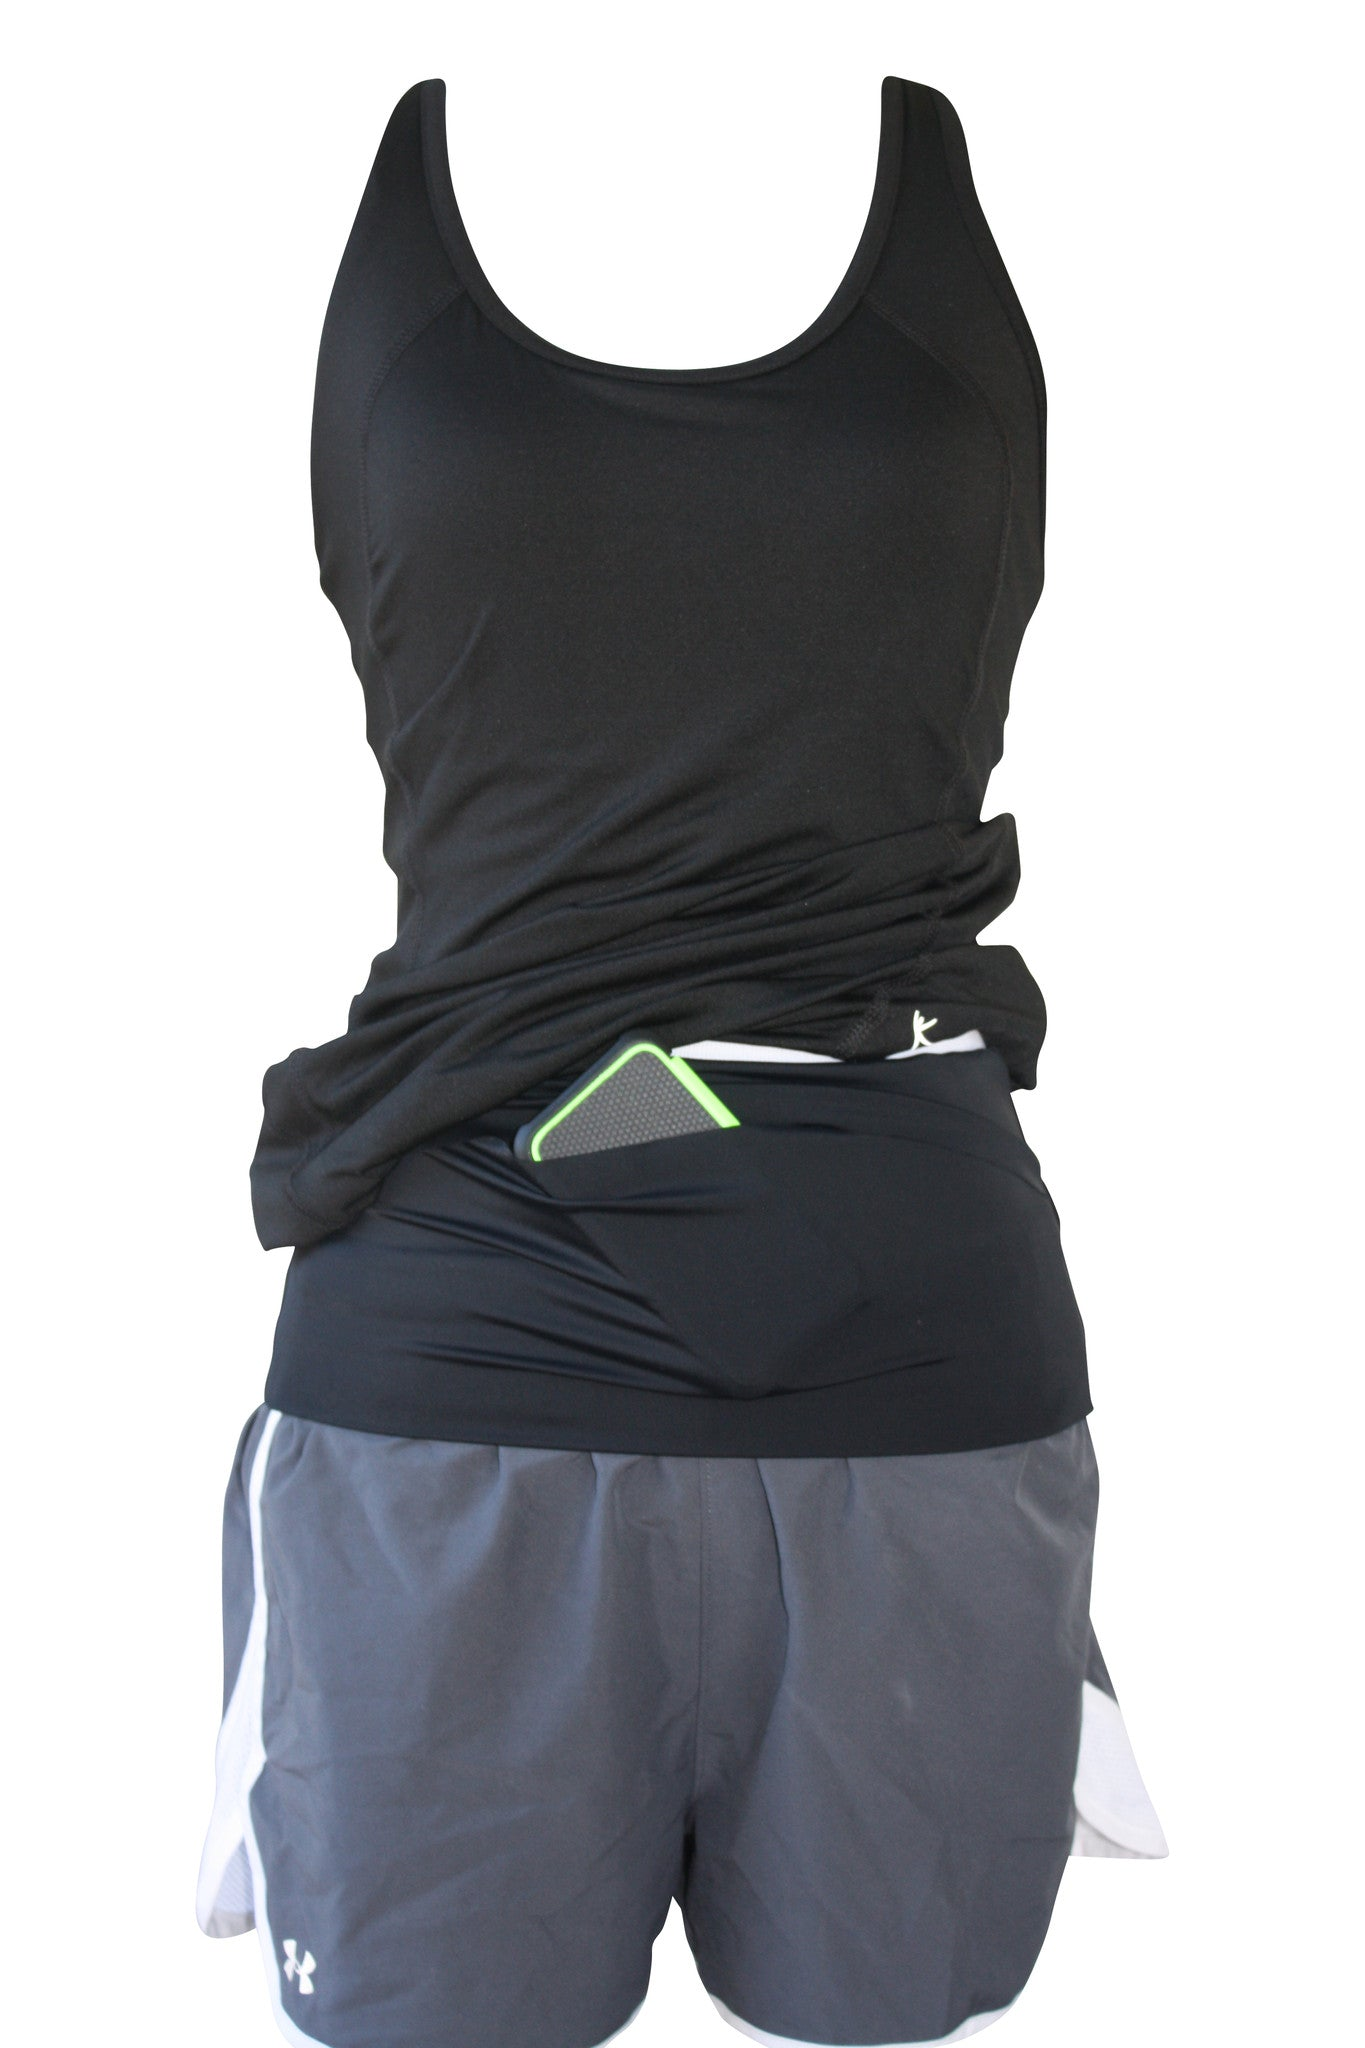 Solid Black Runner's Belt - speedzter  - 2